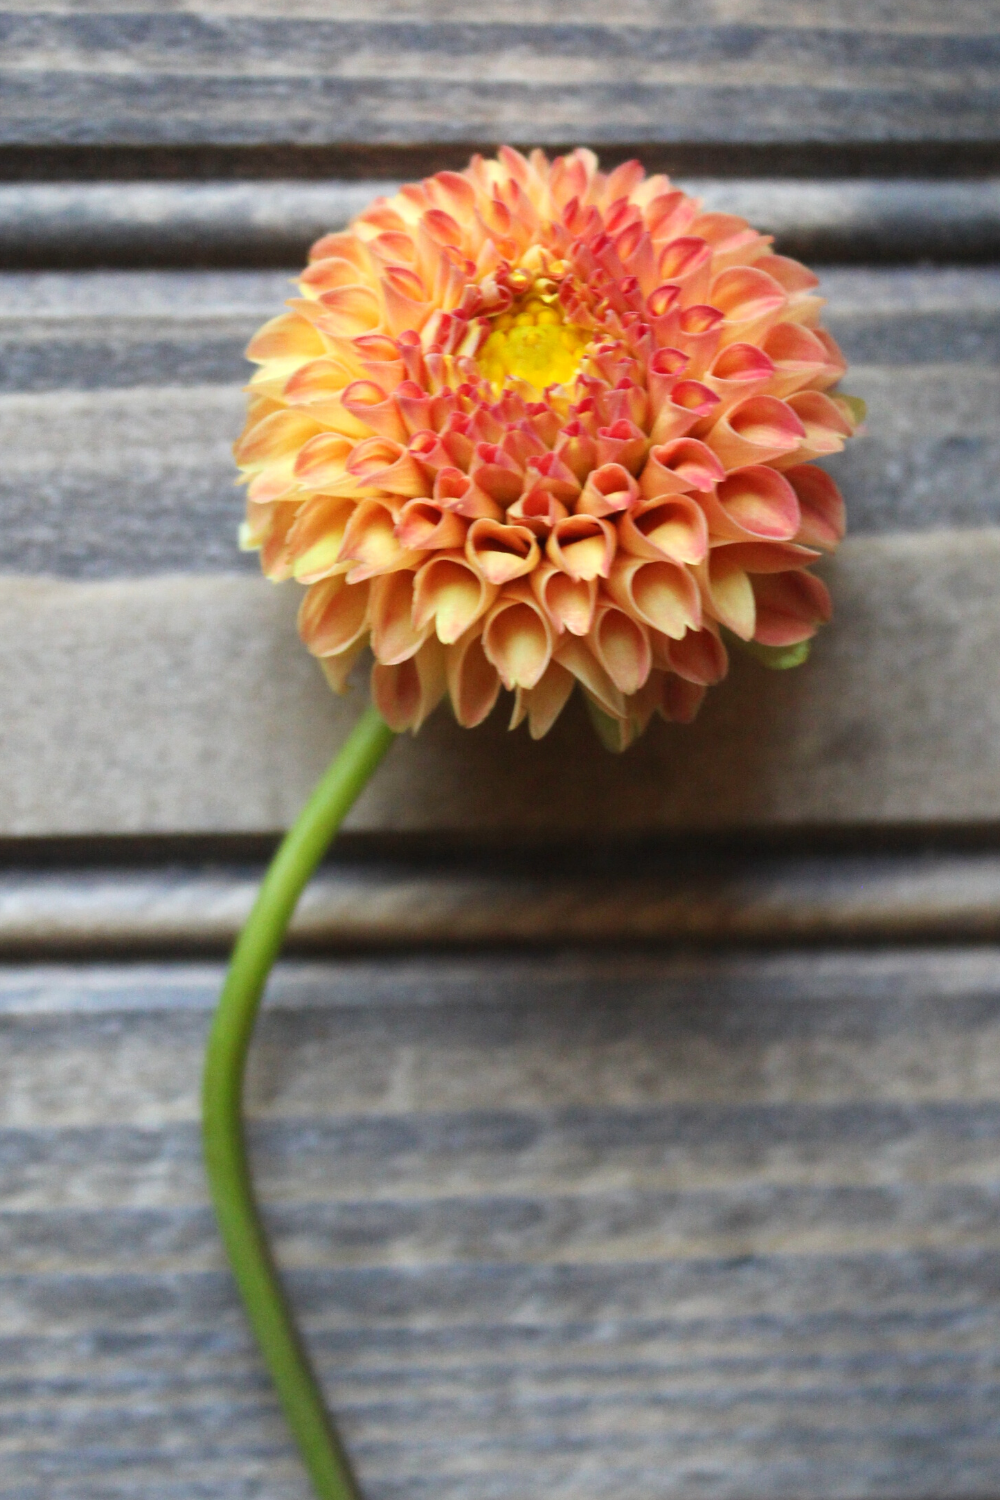 Ginger Willo Best Dahlias for Cut Flower Gardens Dahlia Flower Review The Best Dahlias for Bouquets and Weddings My Farmhouse Table